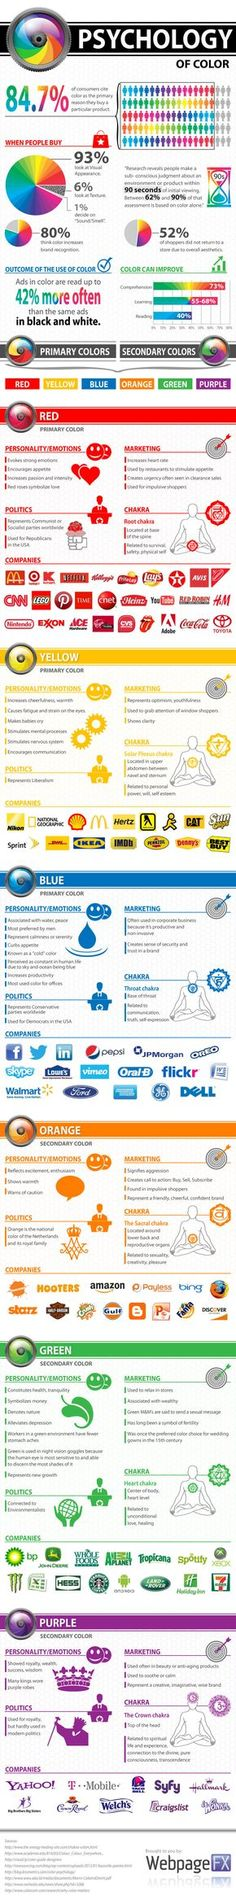 Psicología del color. #Infografía en inglés. Titulo original: Psychology of Color